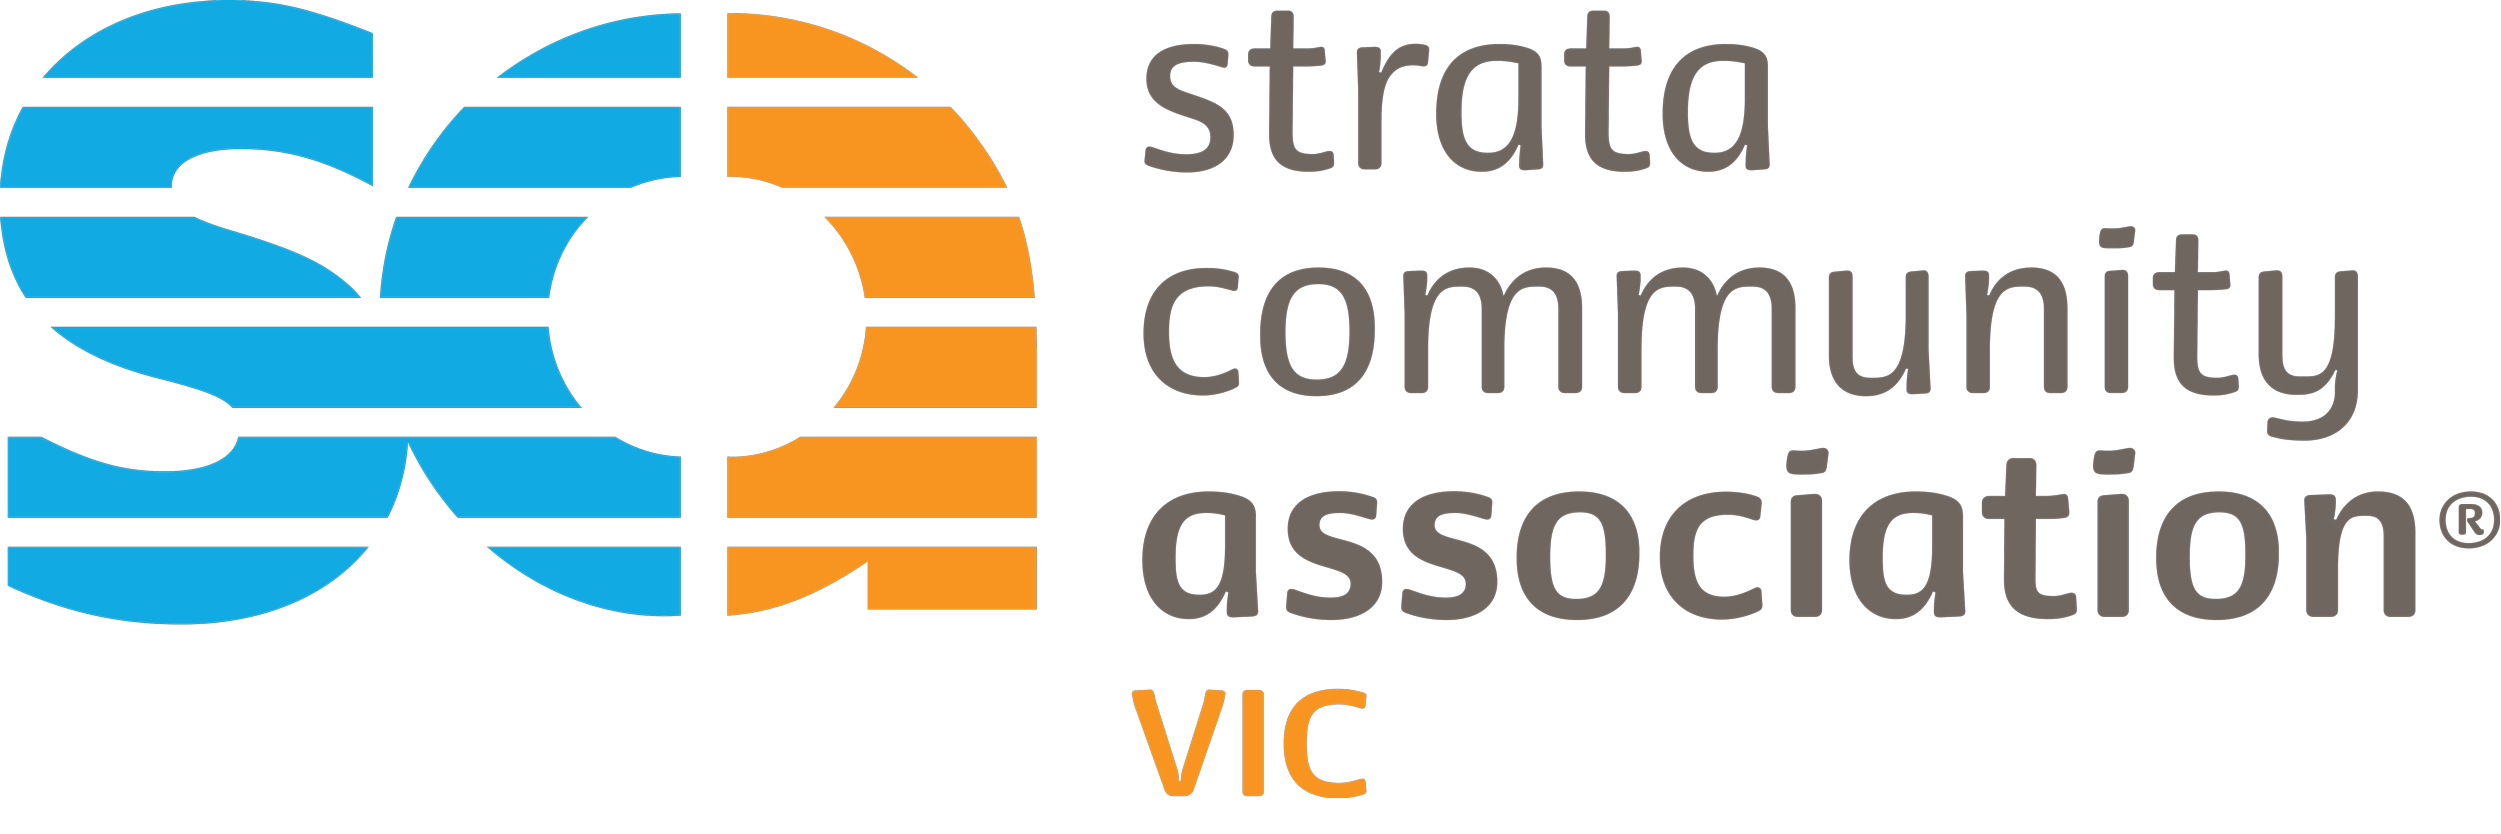 Strata Community Association Victoria logo.